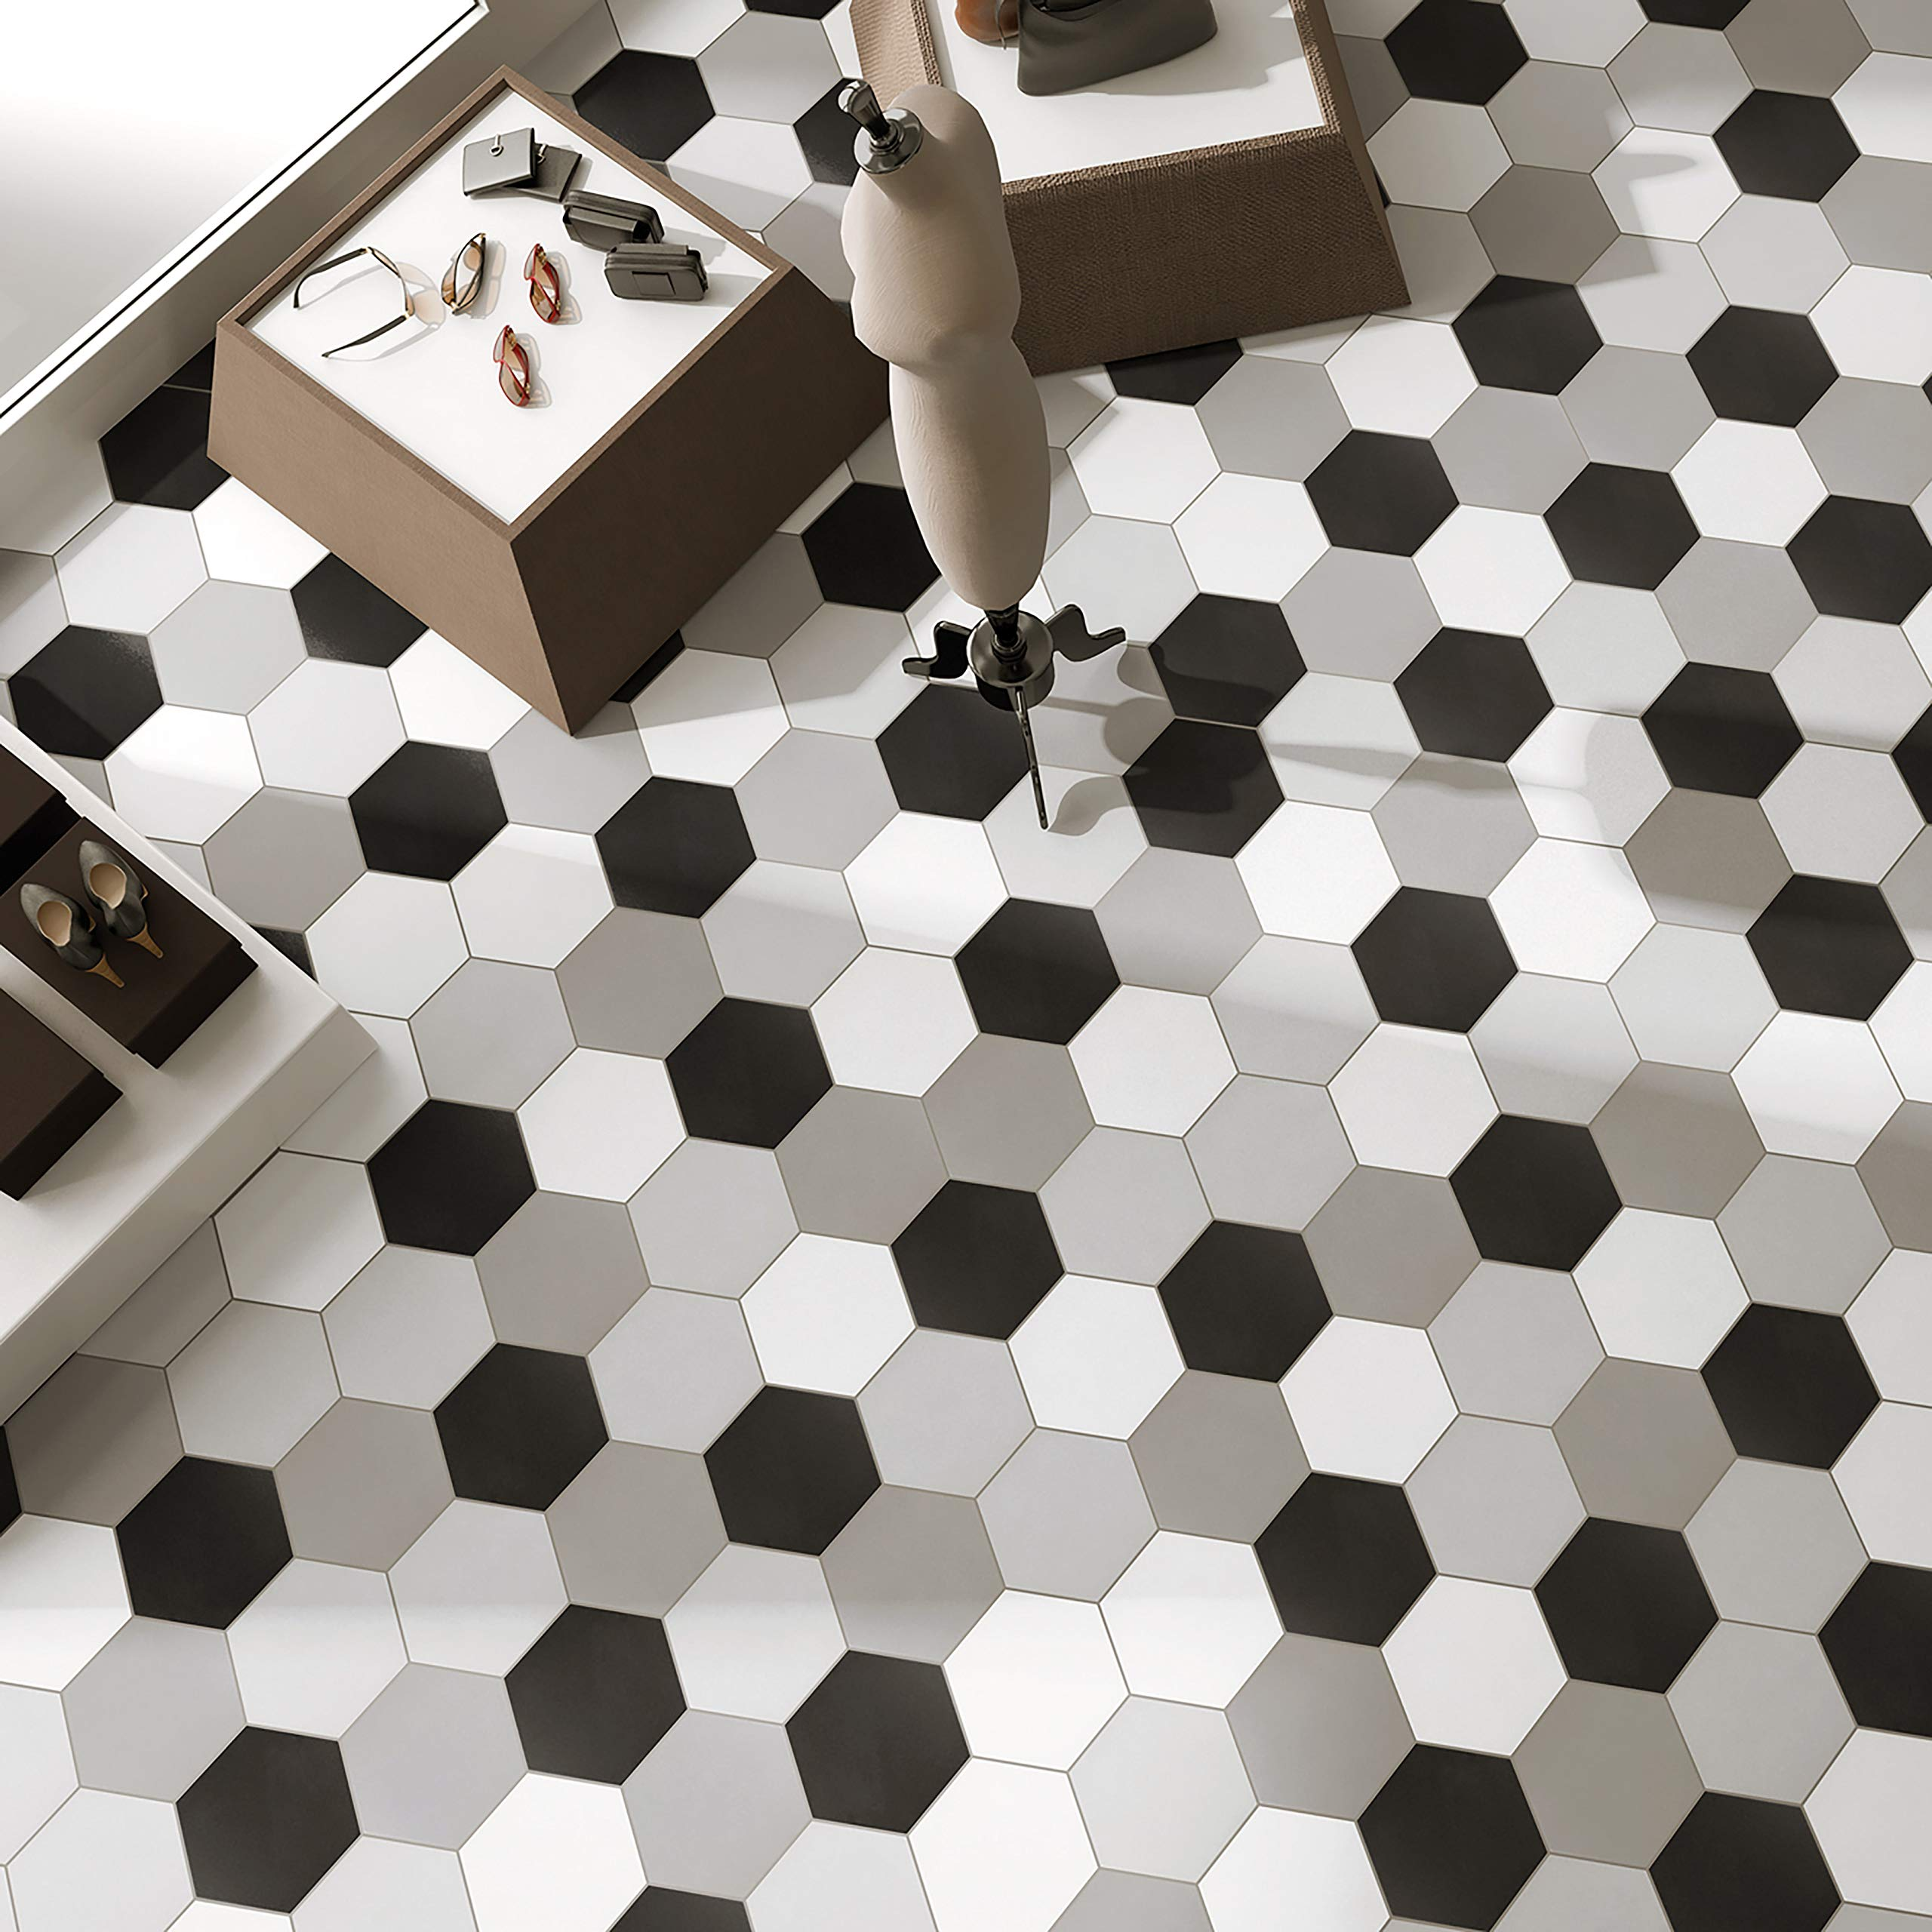 SomerTile FCD10STX Abrique Hex Porcelain Floor and Wall, 8.63'' x 9.88'', Silver Tile 8.625'' x 9.875'' 25 Piece by SOMERTILE (Image #6)